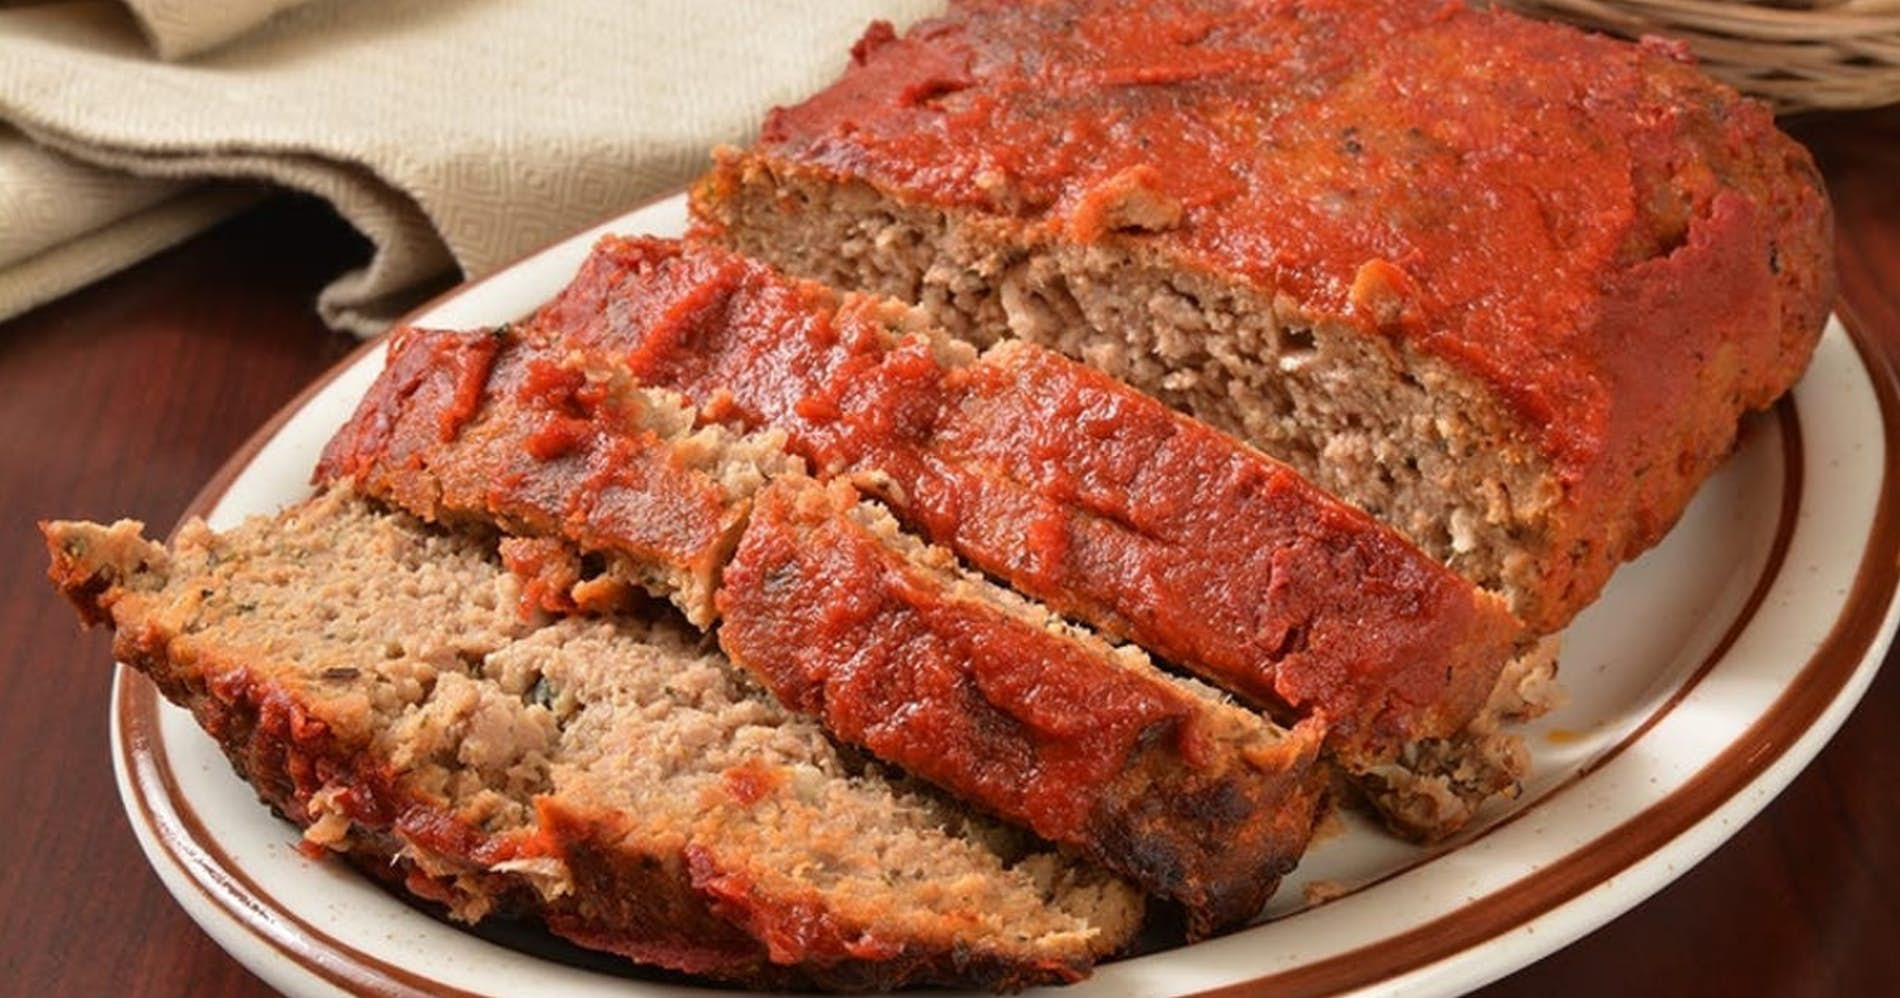 Classic Home style Meatloaf